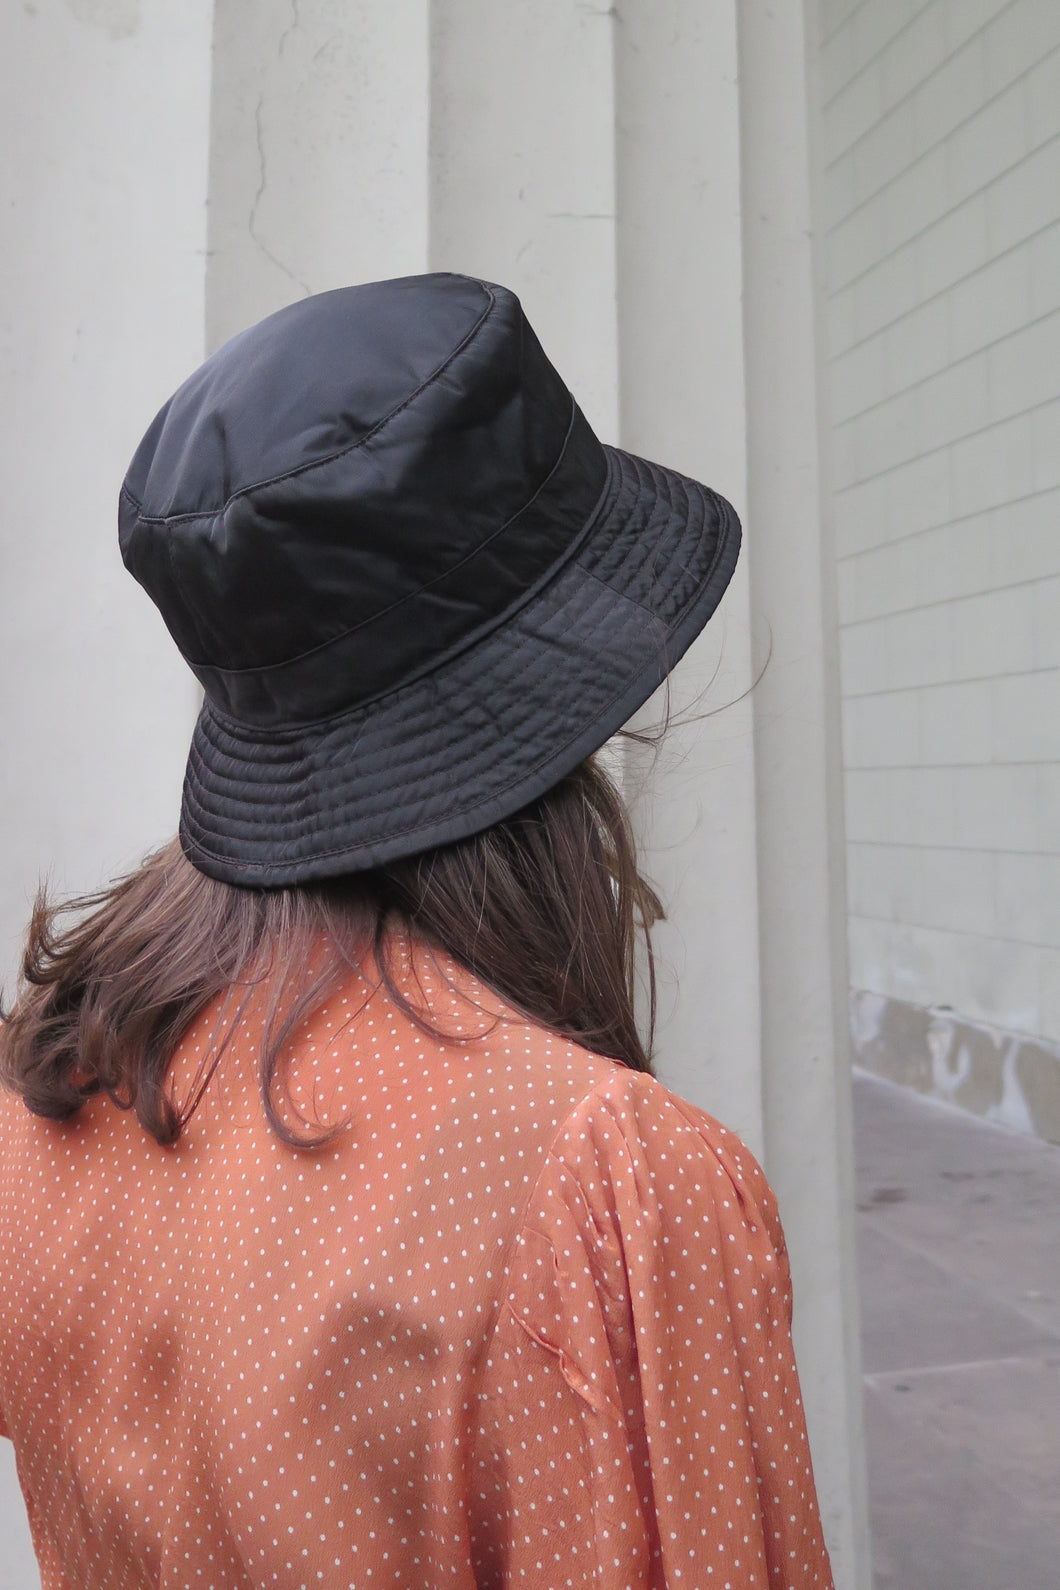 ... Prada Black Nylon Bucket Hat - Studio Travel ... 29a5d6fb859